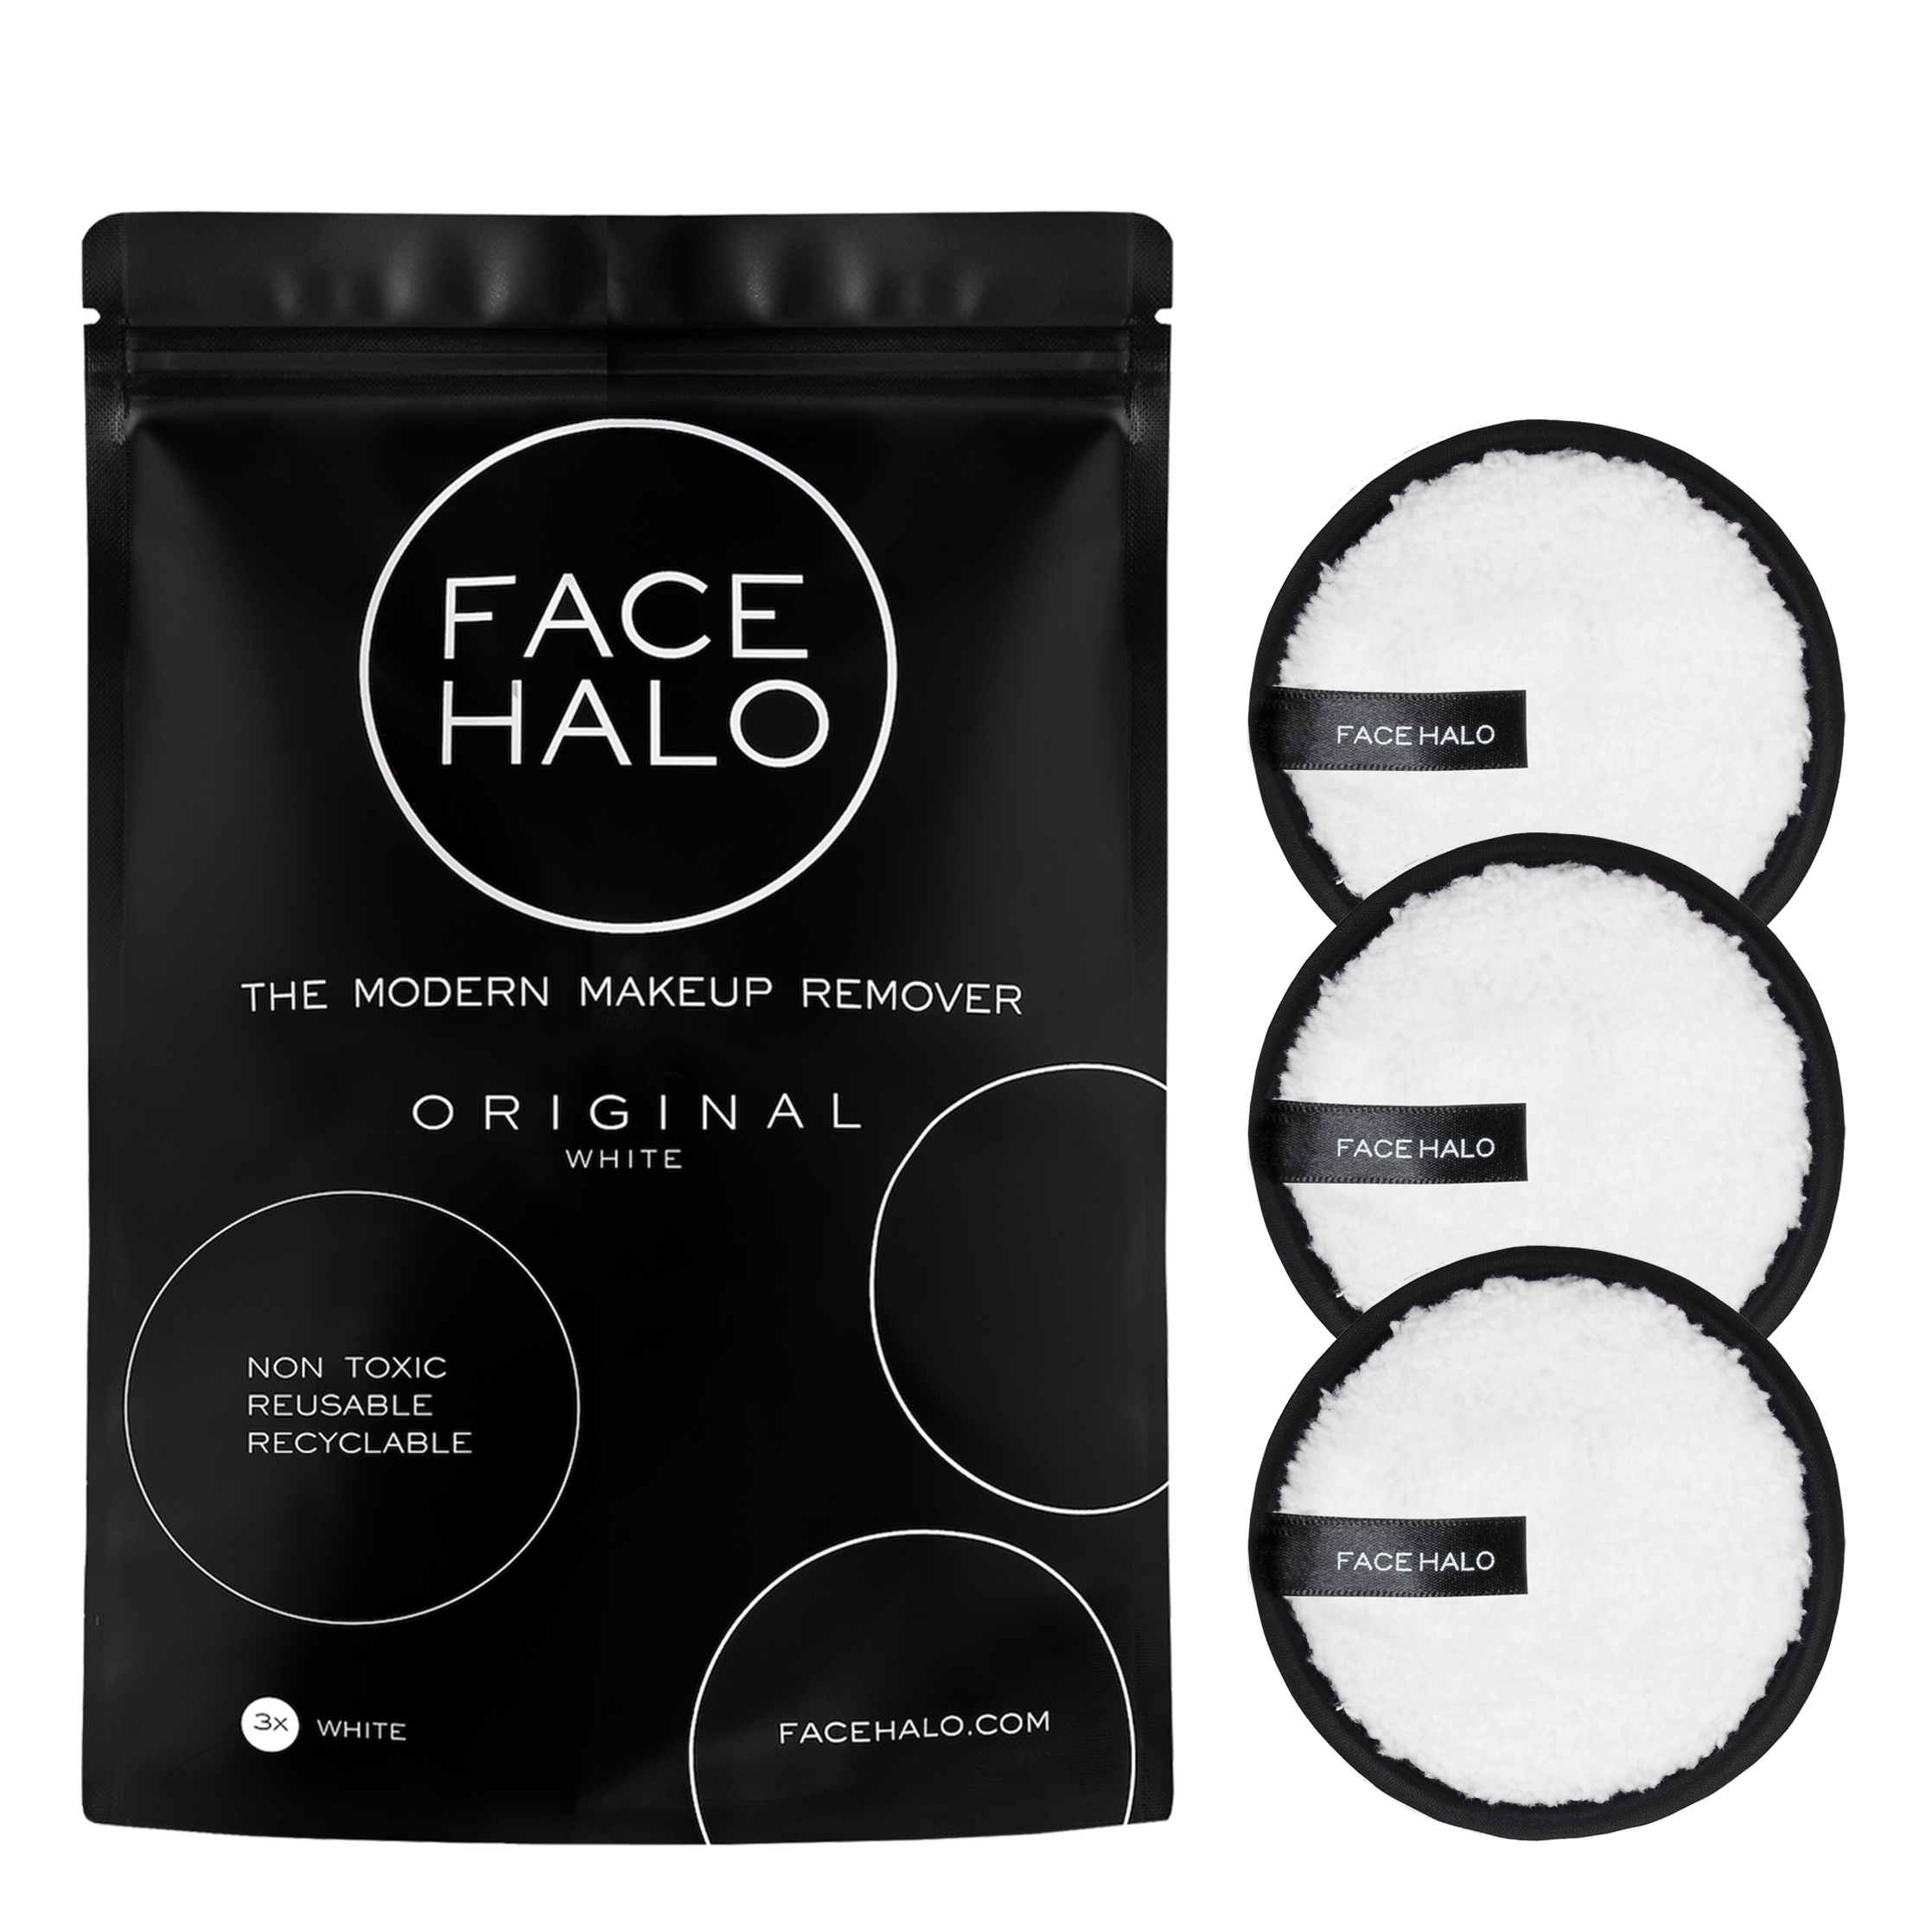 Face Halo Original - with packaging.png